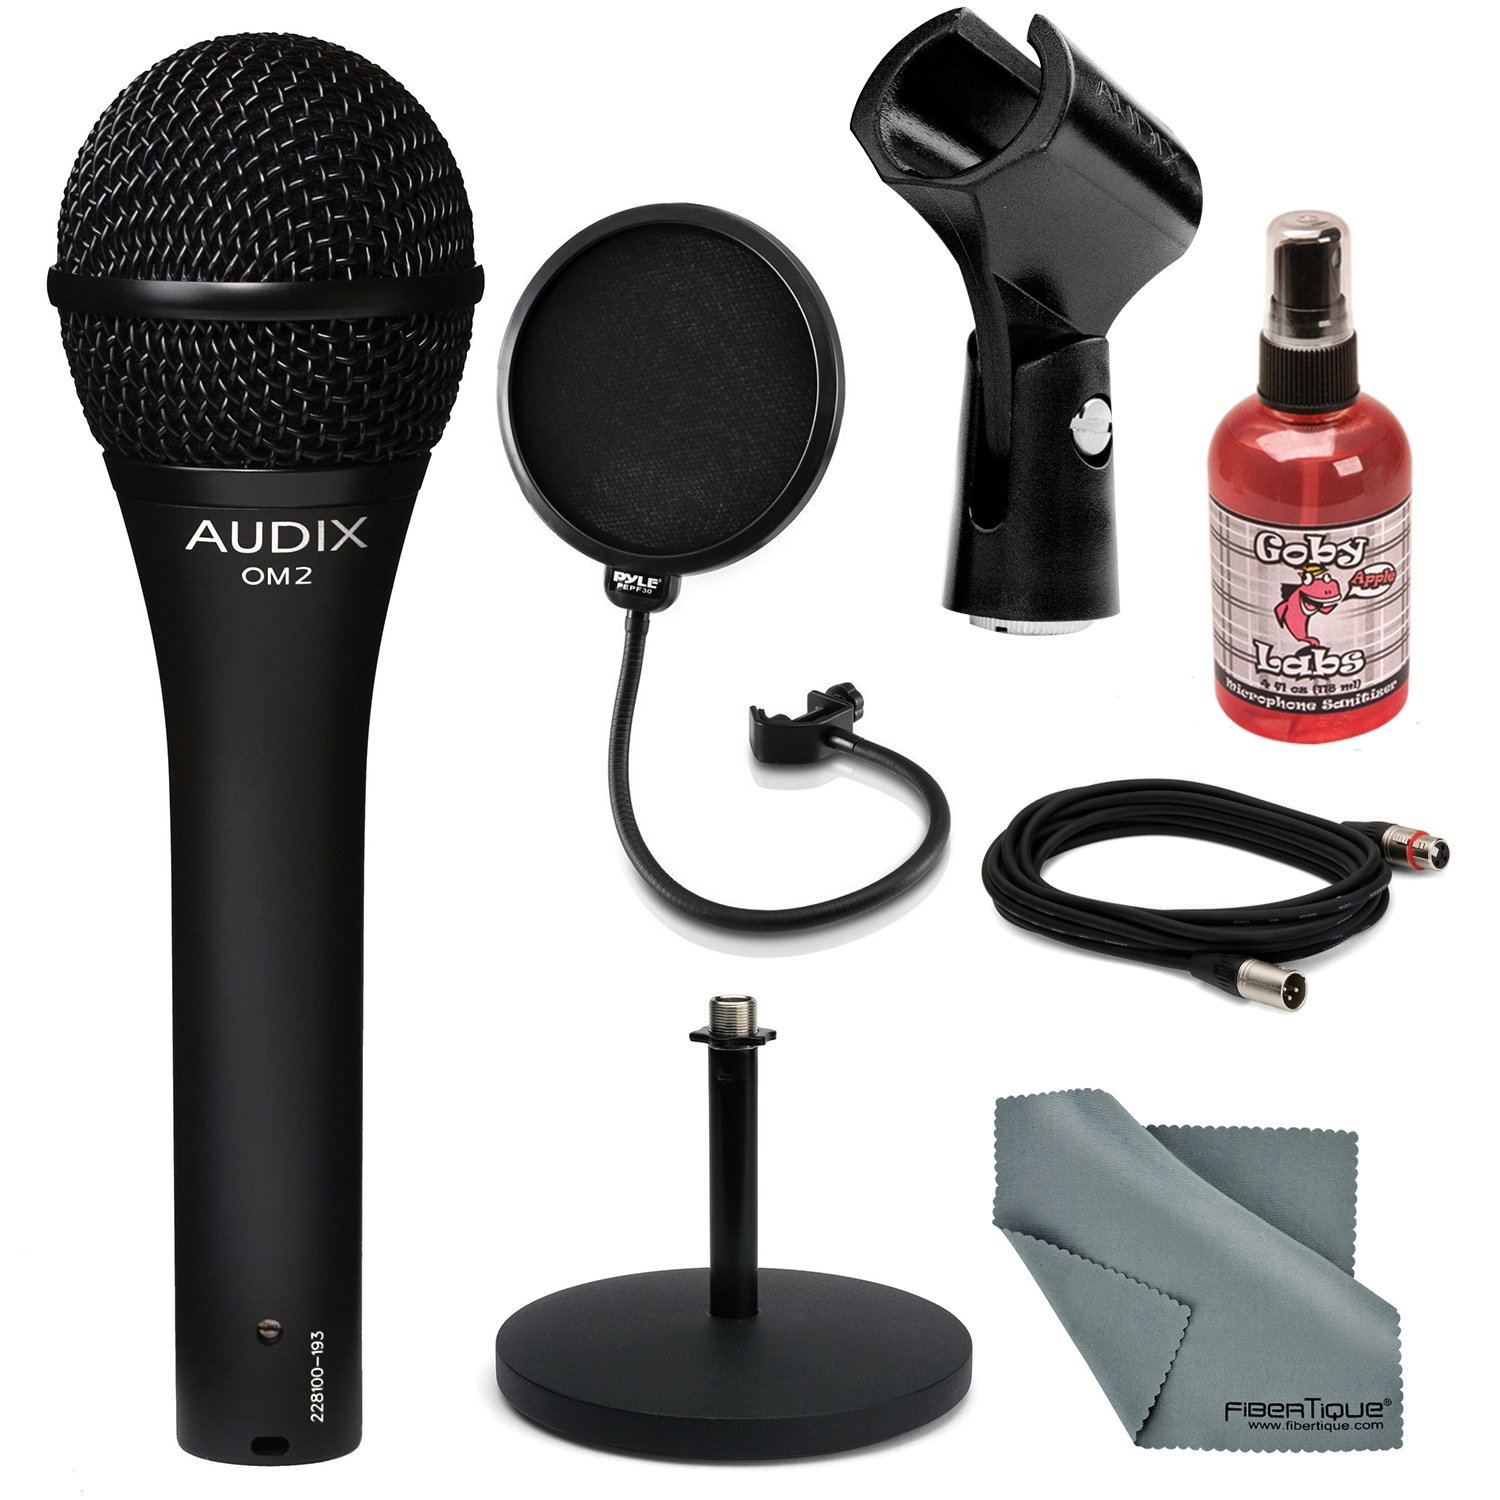 Audix OM-2 Handheld Dynamic Microphone Deluxe Bundle with Mic Stand + Pop Fillter + Cable + Mic Sanitizer + Fibertique Cleaning Cloth